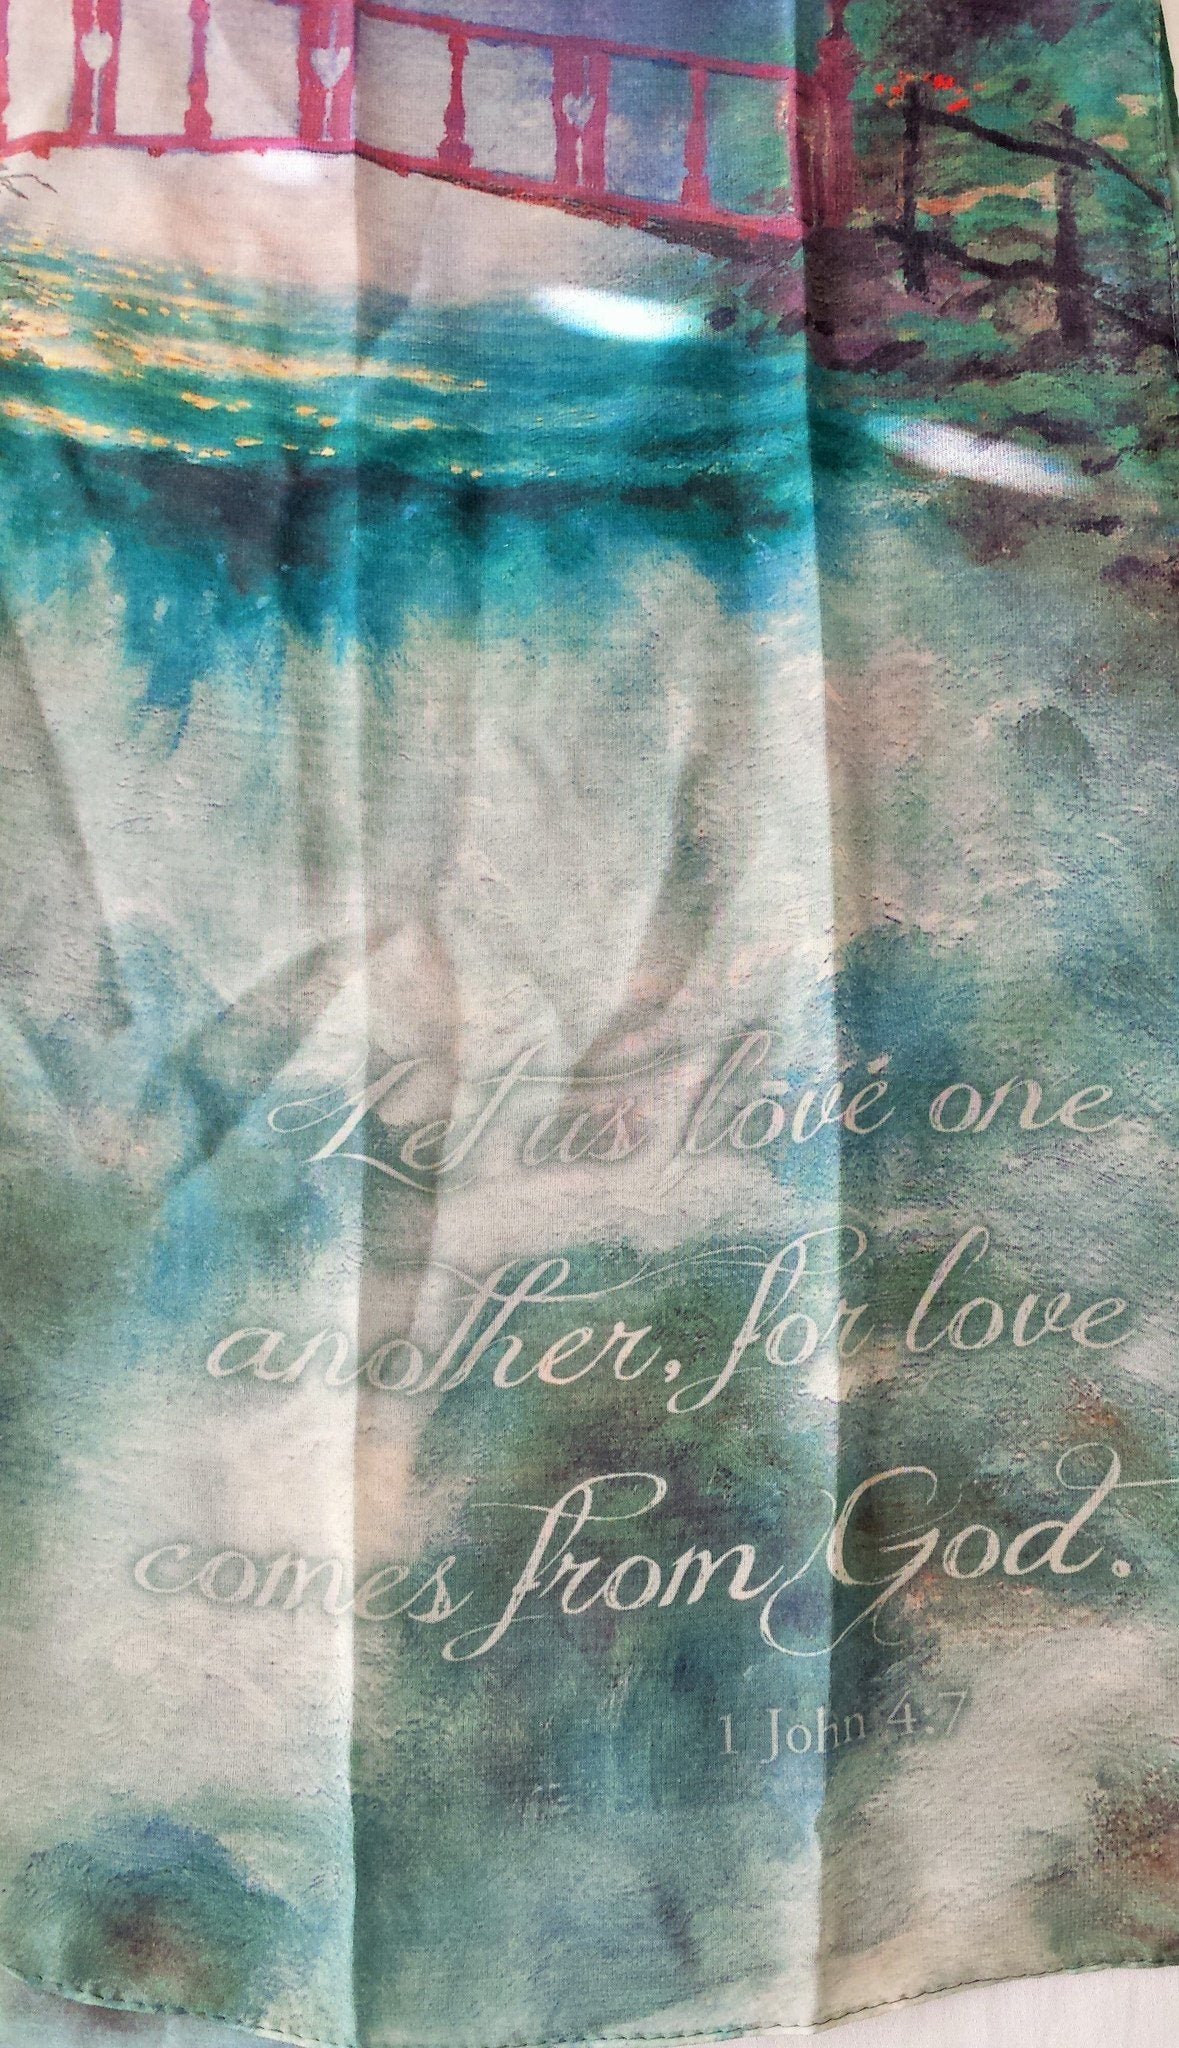 Accessories - Christian Scarf - Let Us Love One Another (Thomas Kinkade Designer Scarf)